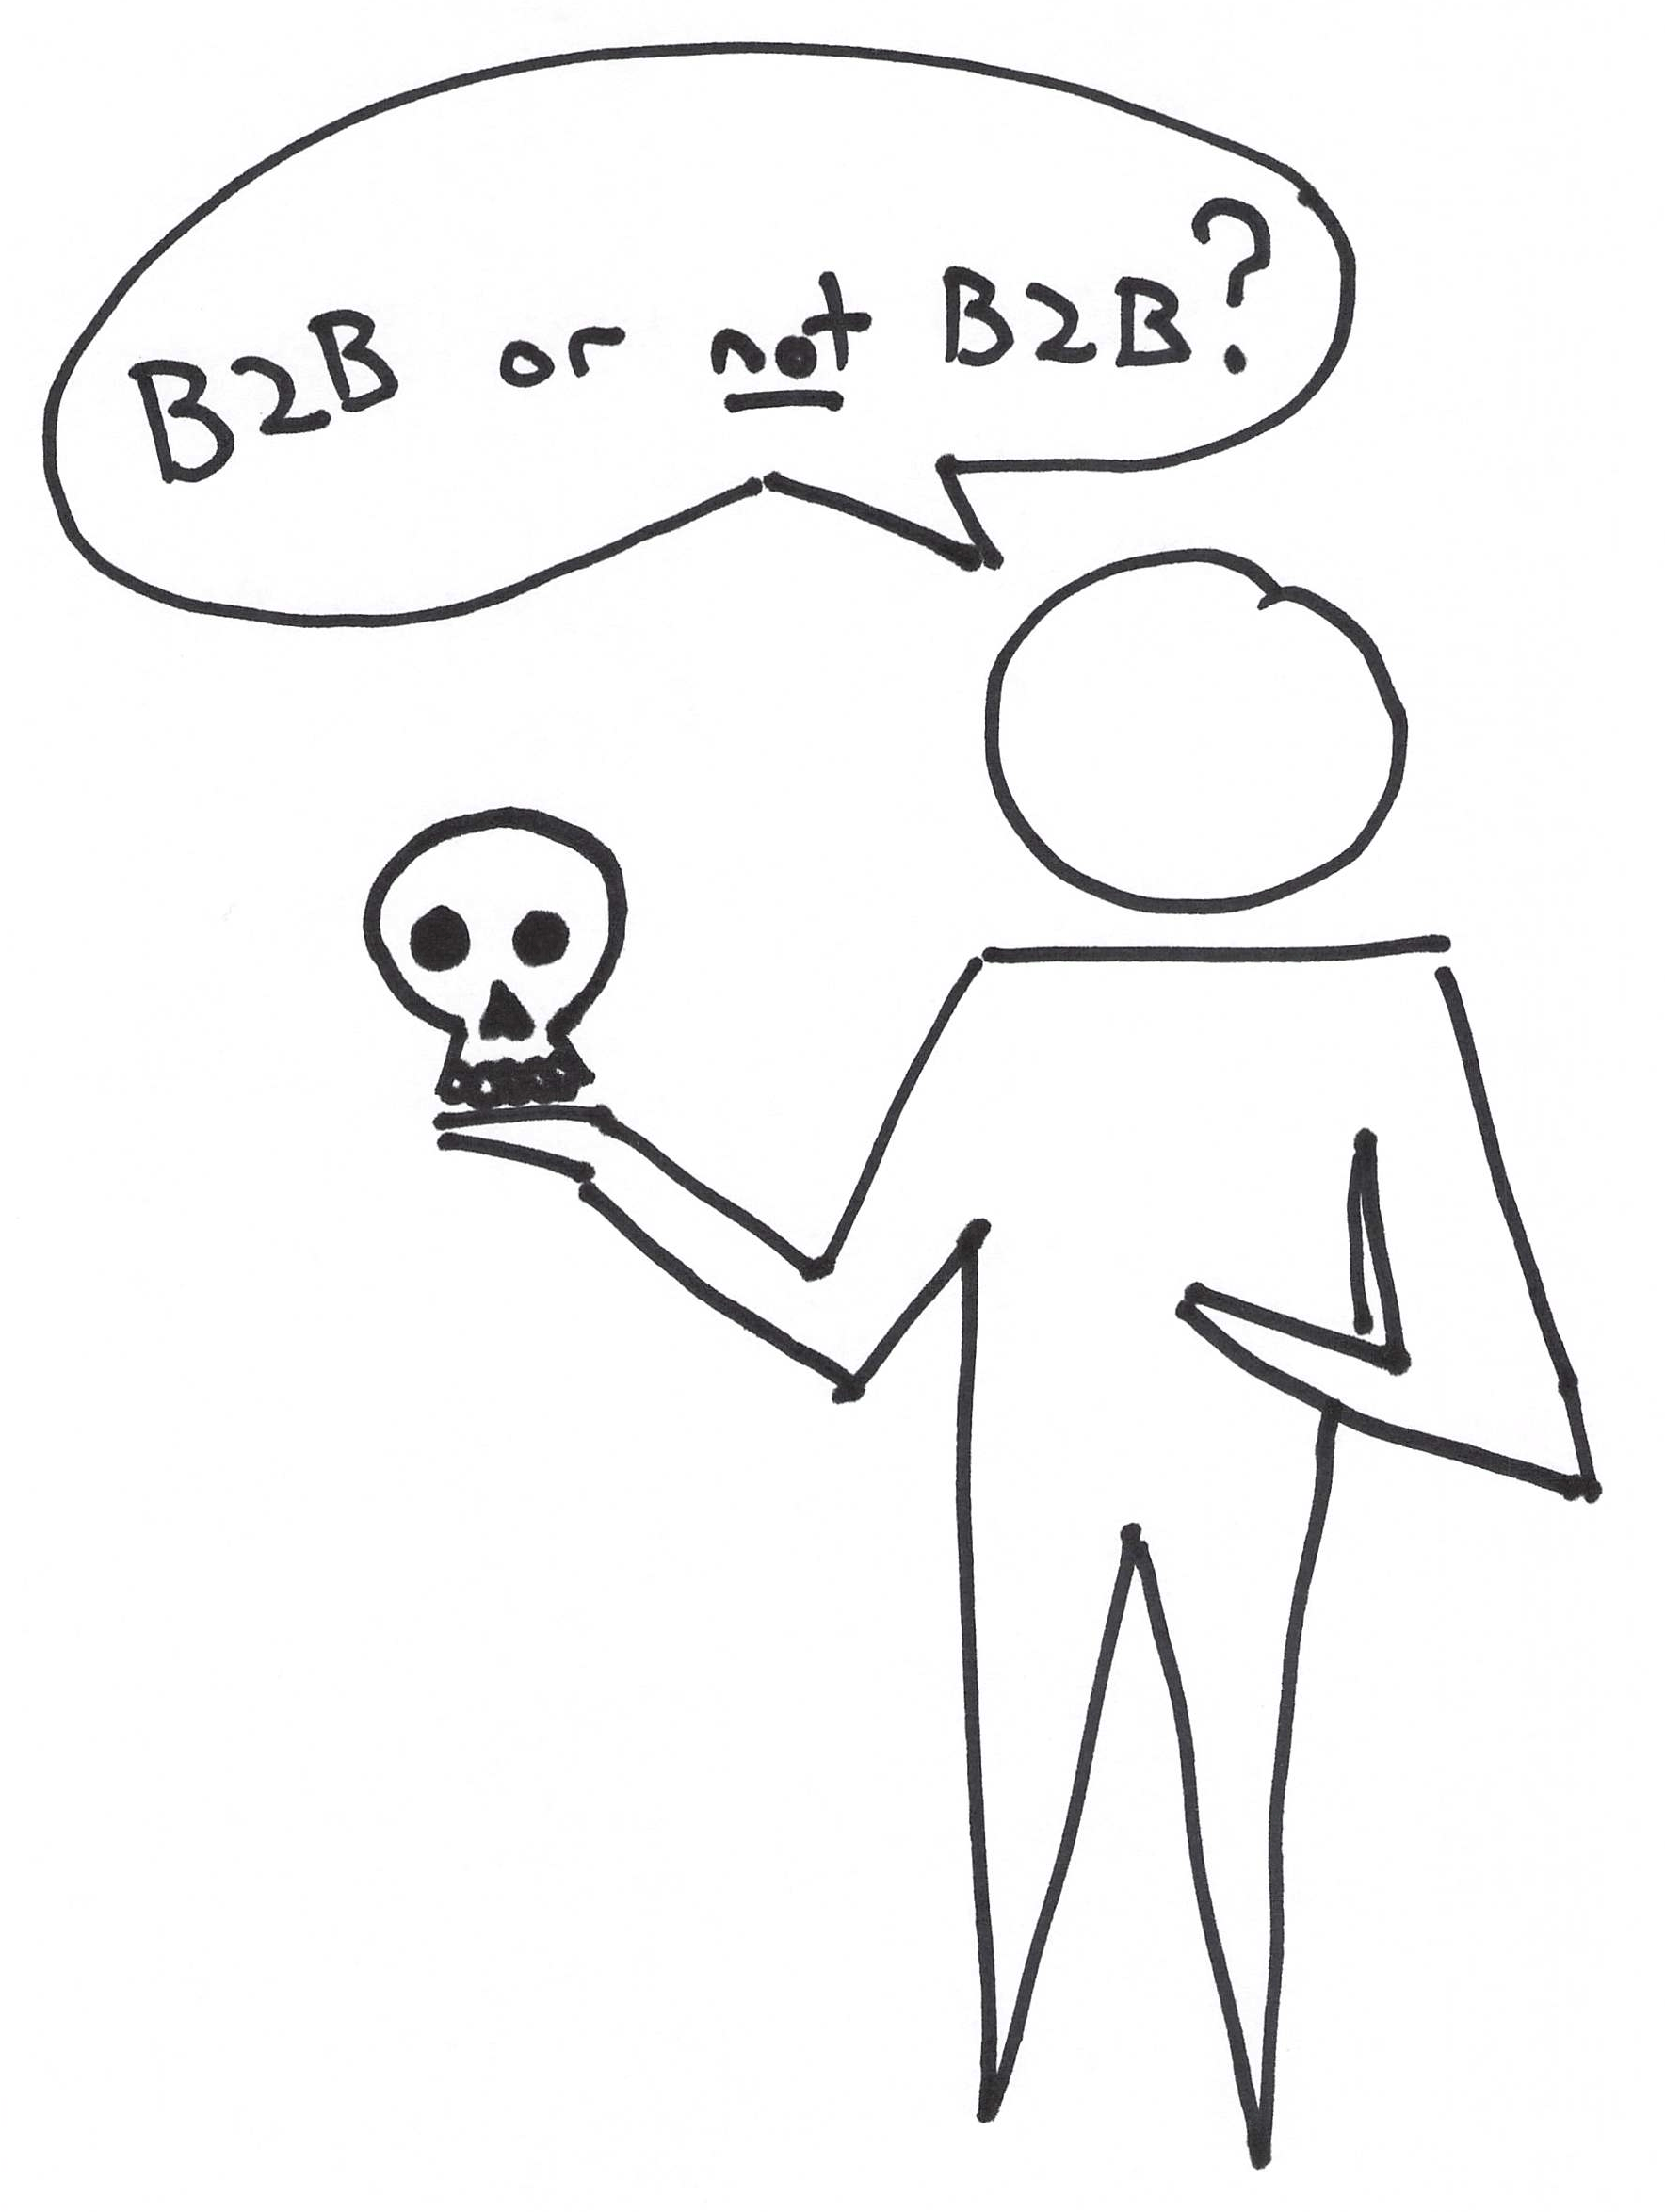 B2B hypothesis - the first step in a well defined experiment